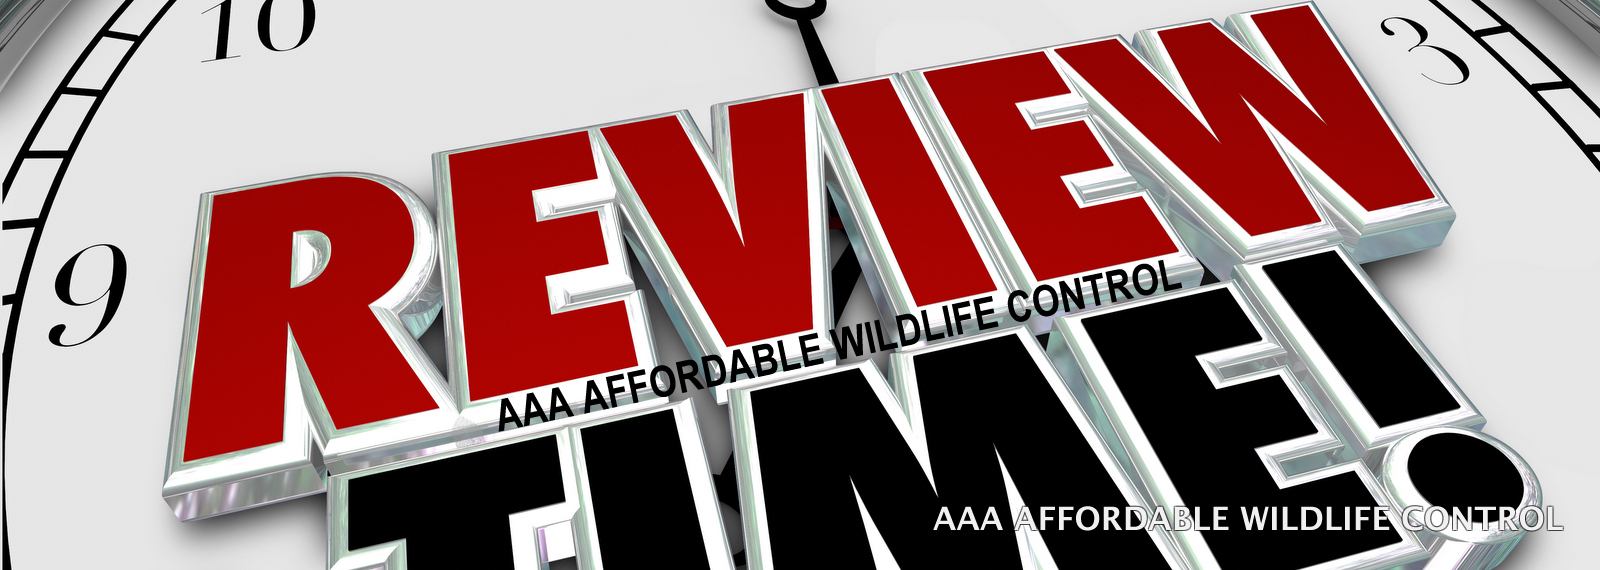 AAA Affordable Wildlife Control Reviews Toronto